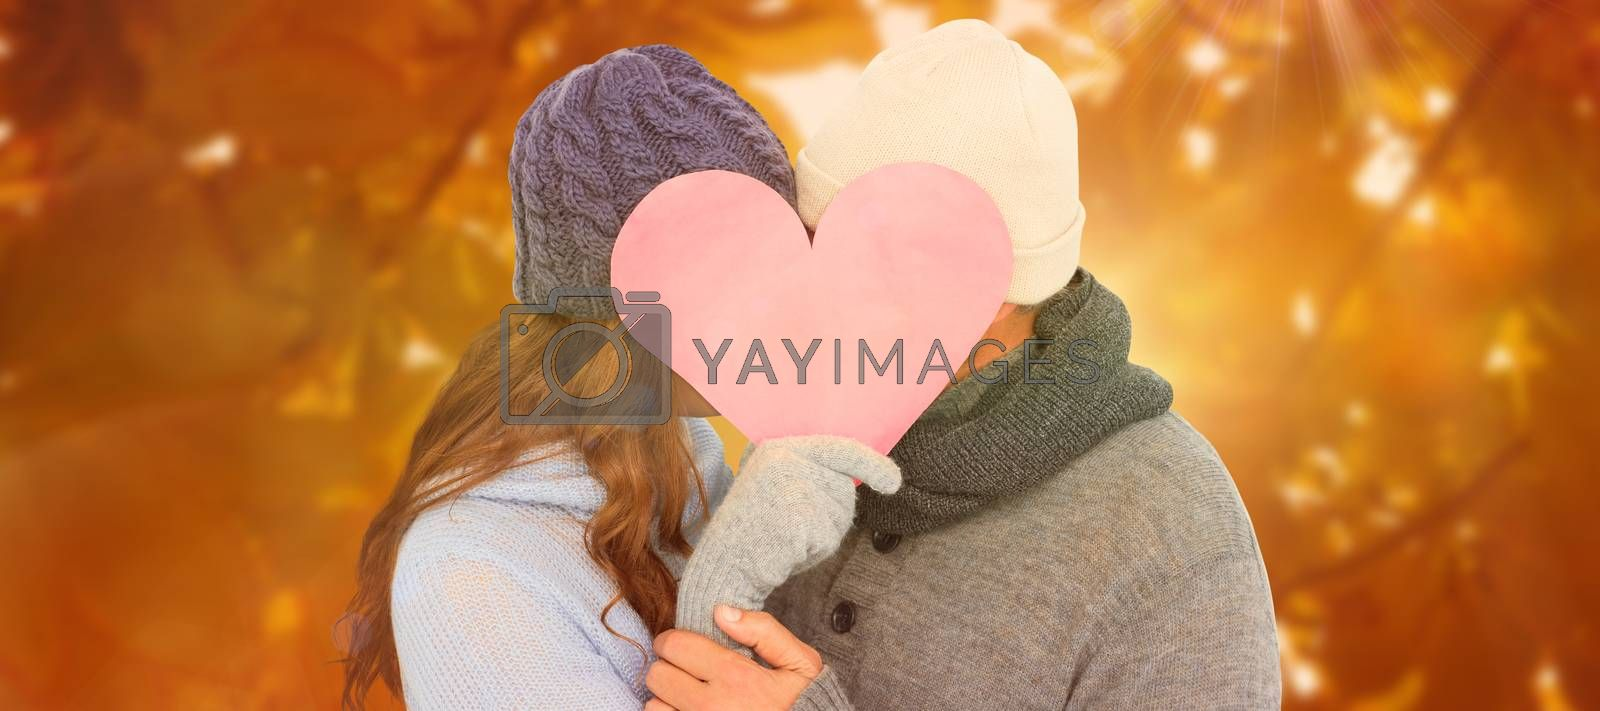 Couple in warm clothing holding heart against autumn scene